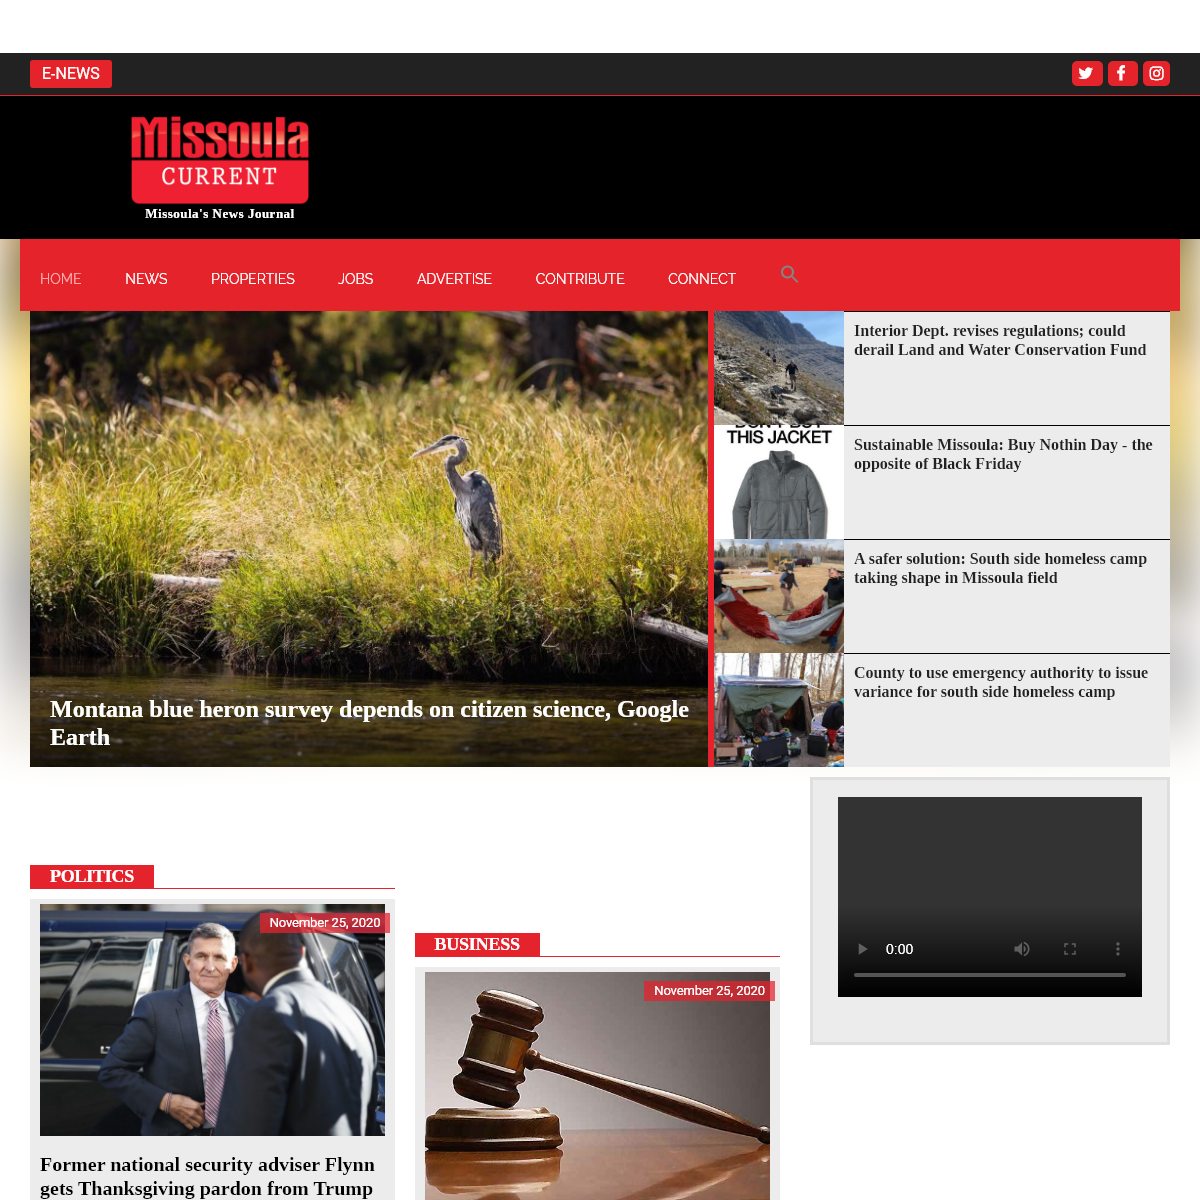 The Missoula Current News - Daily News in Missoula Montana